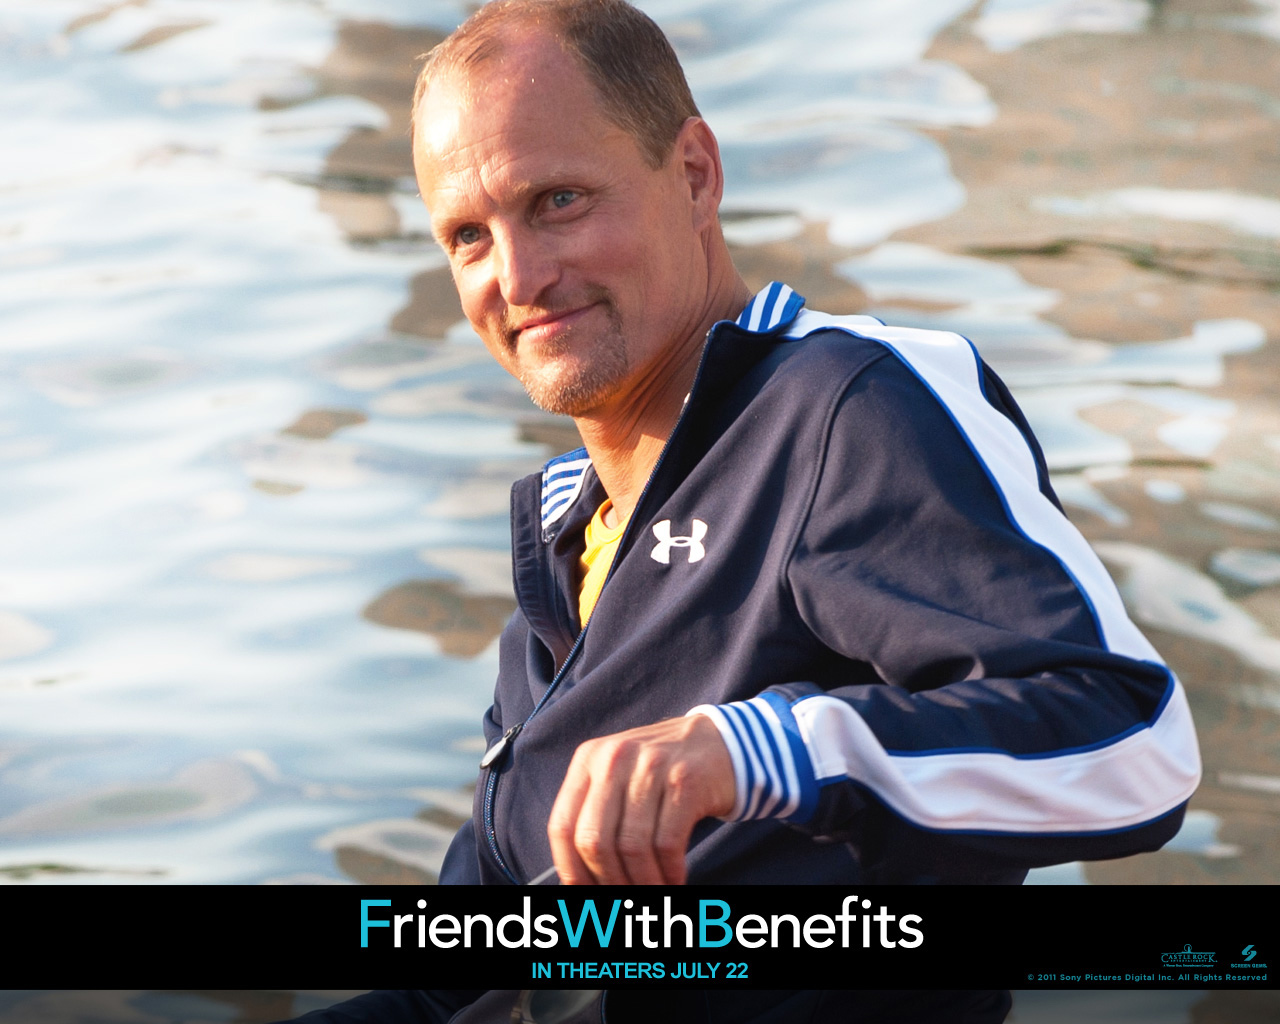 http://1.bp.blogspot.com/-_4UTKVY0rtQ/TjQ_eerJAgI/AAAAAAAAB8s/gmi-ug4NT78/s1600/Woody_Harrelson_in_Friends_with_Benefits_Wallpaper_6_1024.jpg